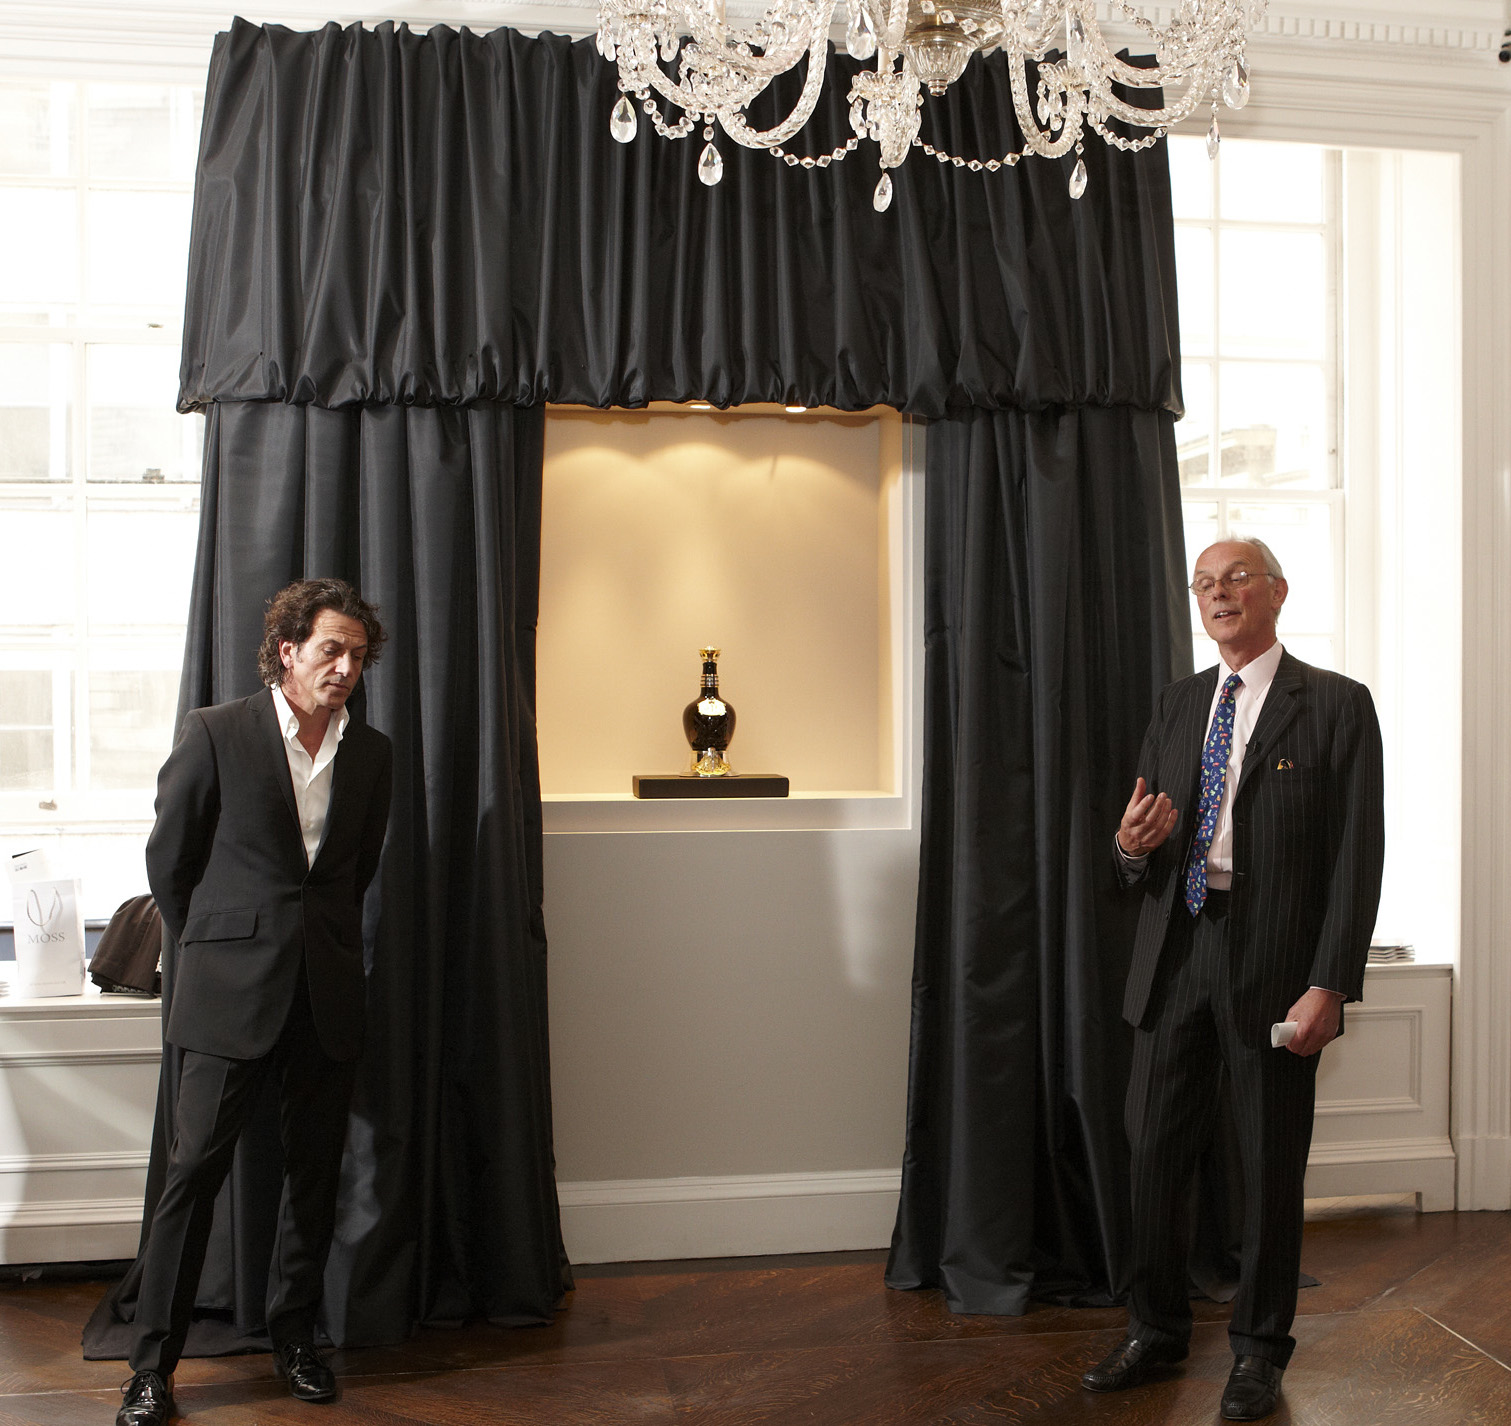 Black Trevira Drapes at the Garrard Store Launch